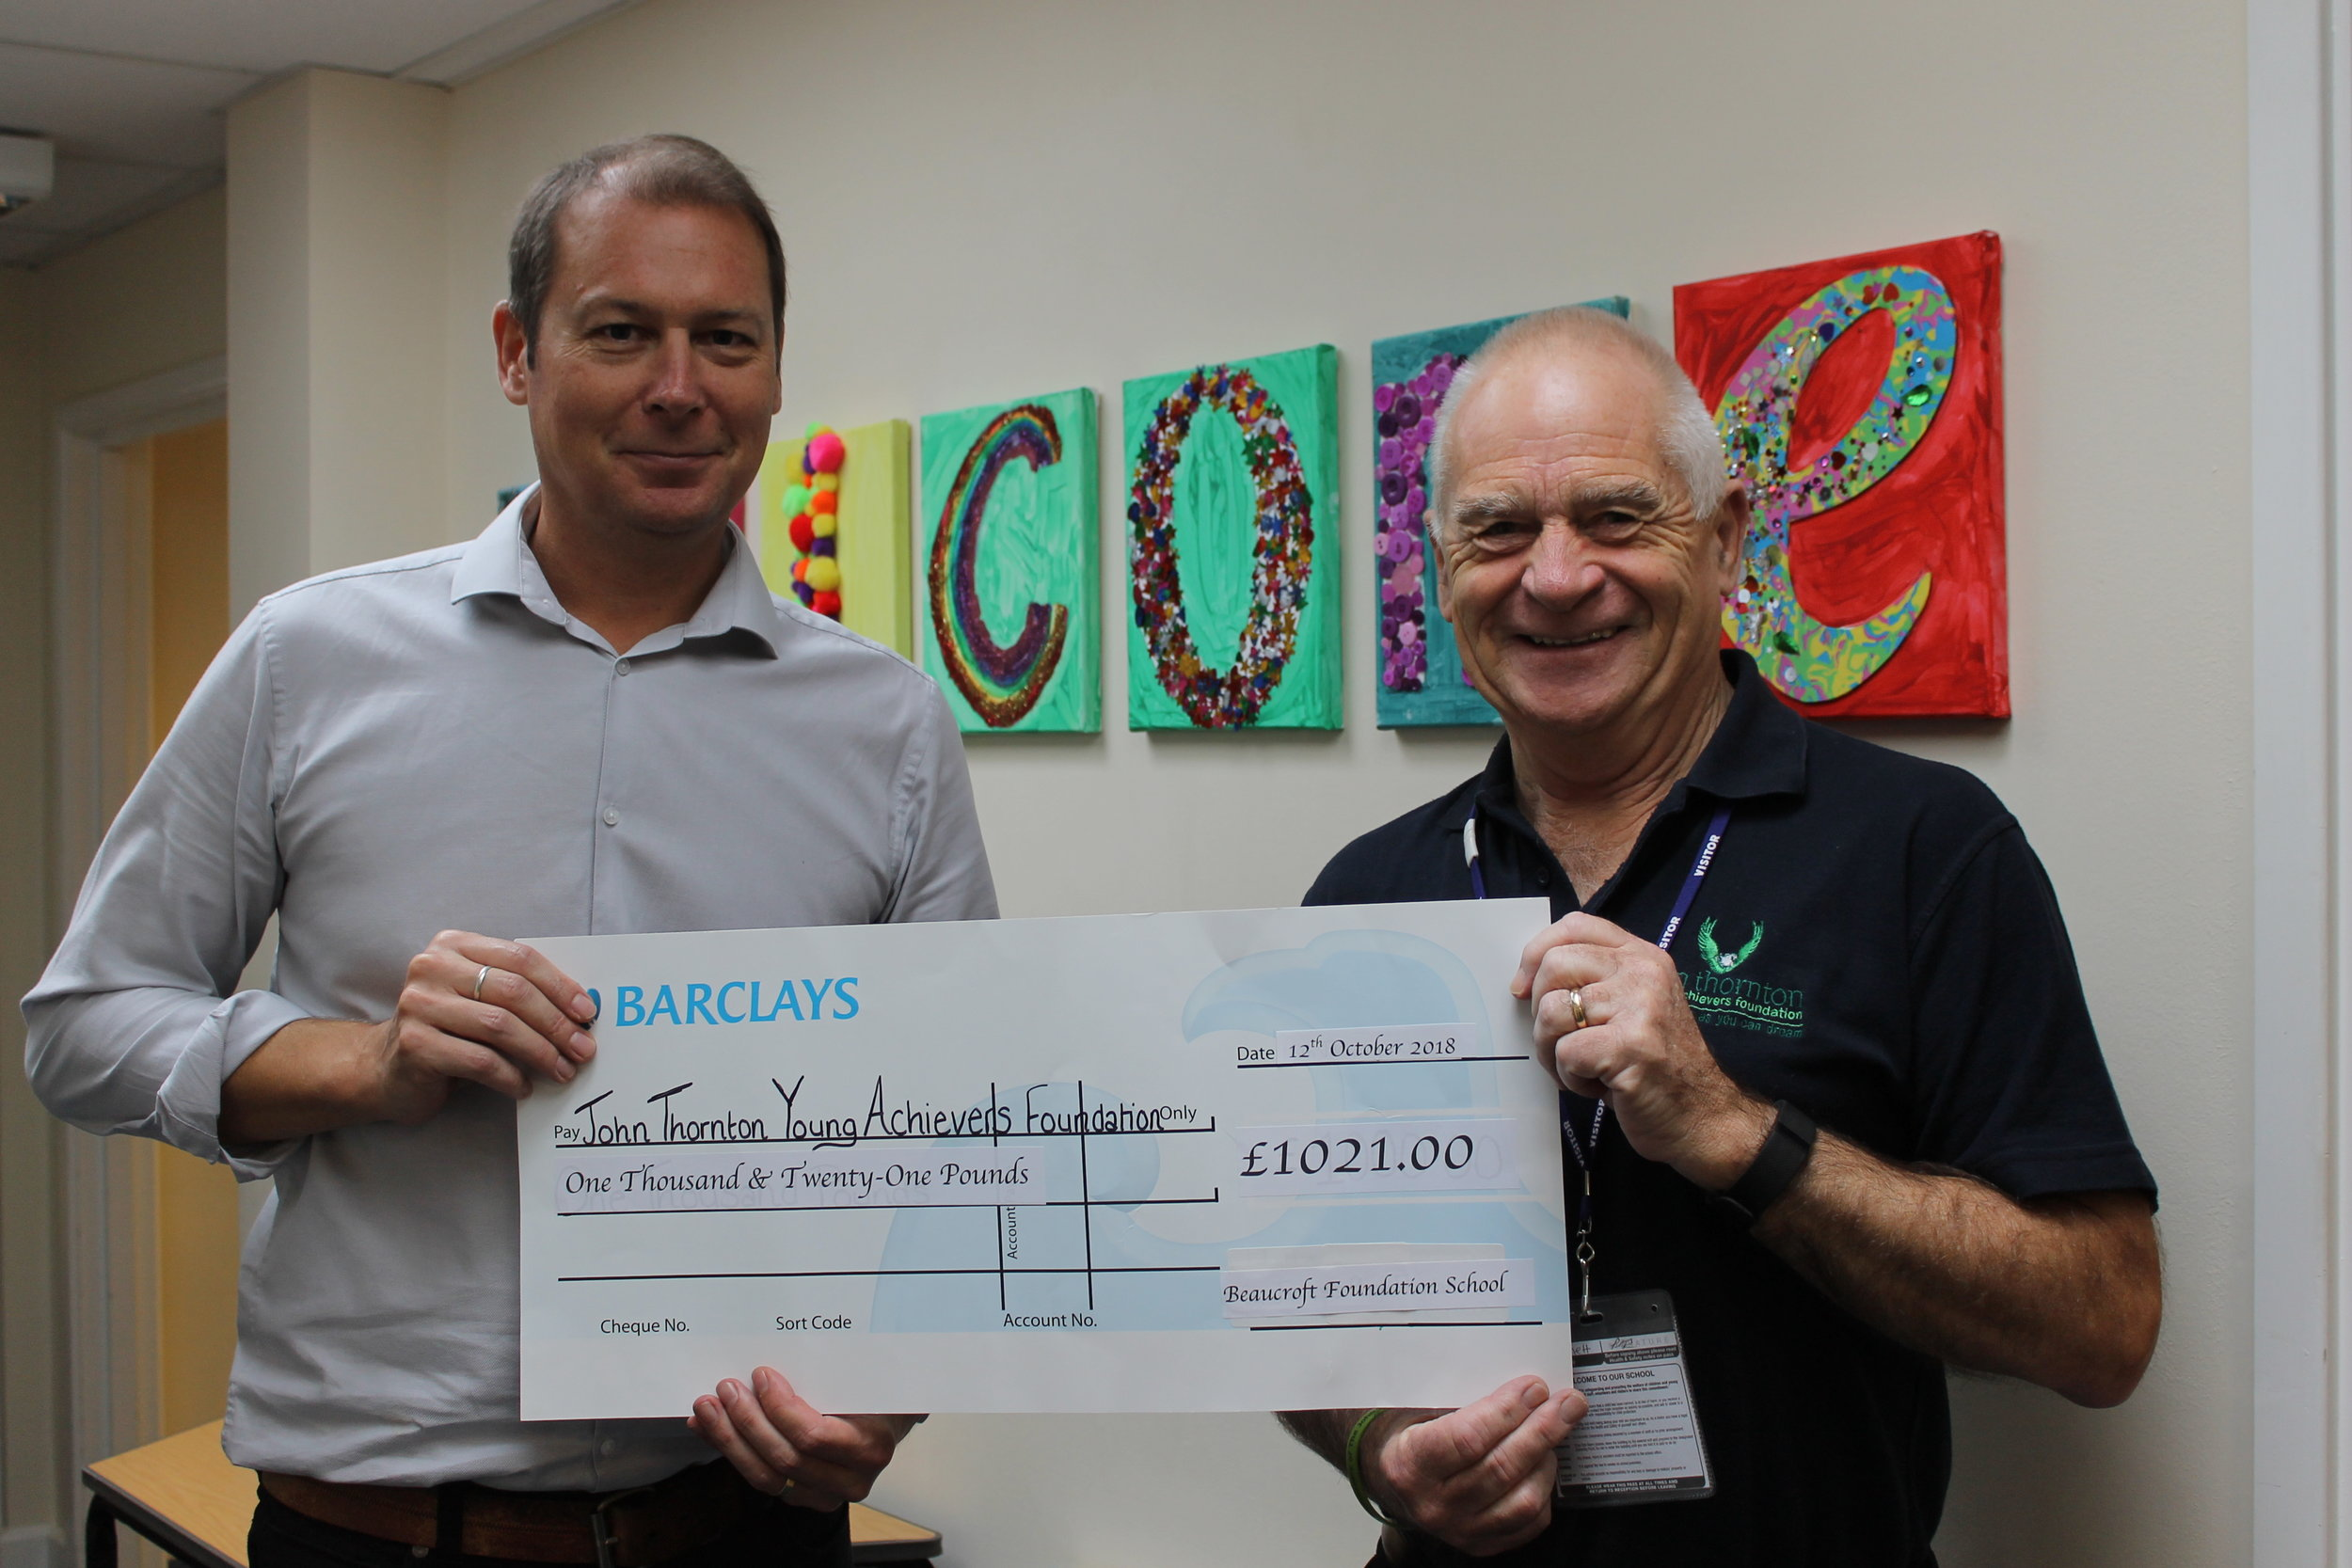 Beaucroft Headteacher Joe Barnett presenting the big cheque to JTYAF Chairman Pete Thornton.